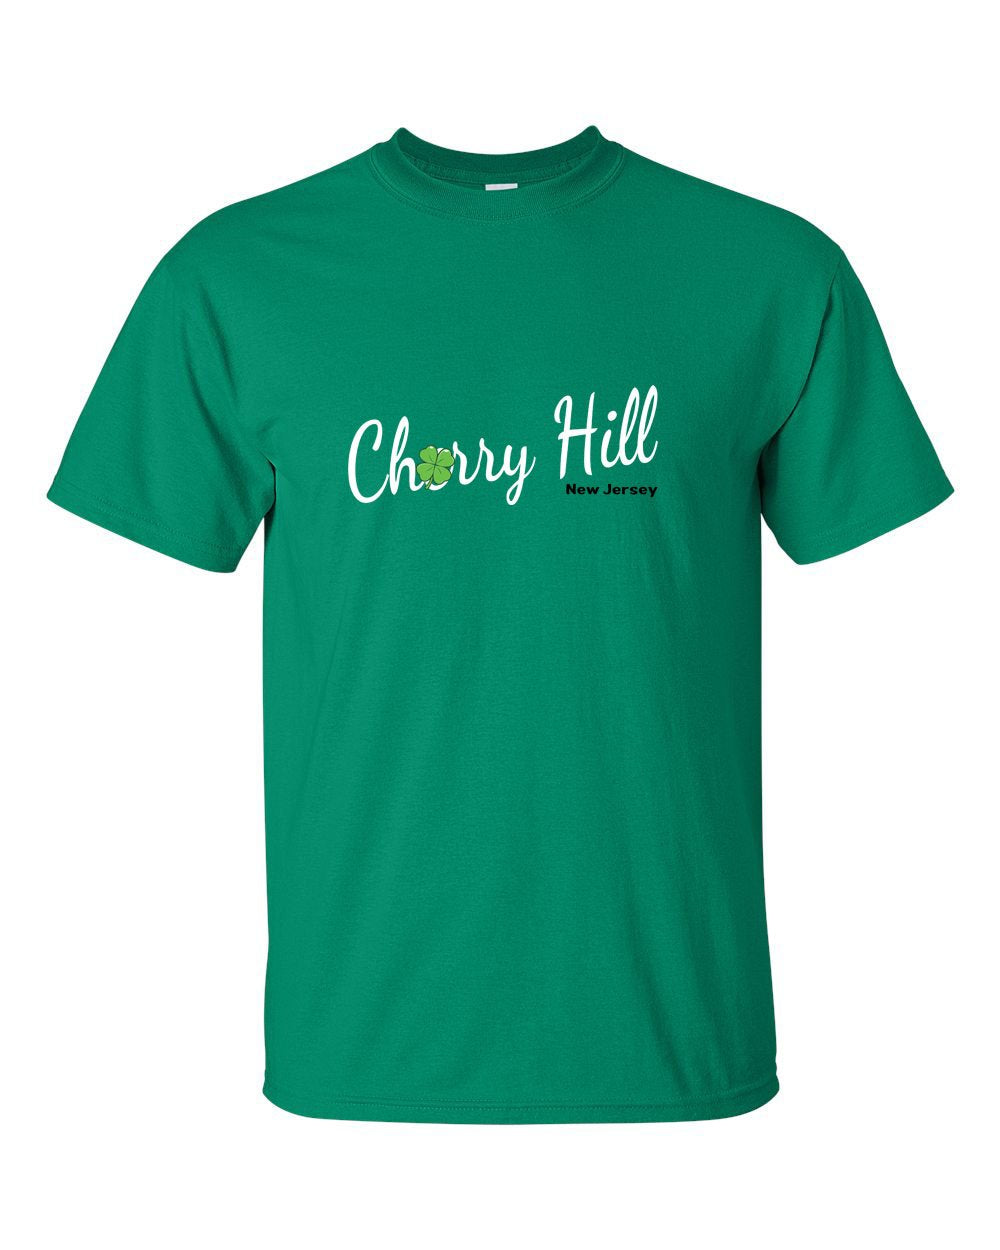 Irish Cherry Hill Mens/Unisex T-Shirt